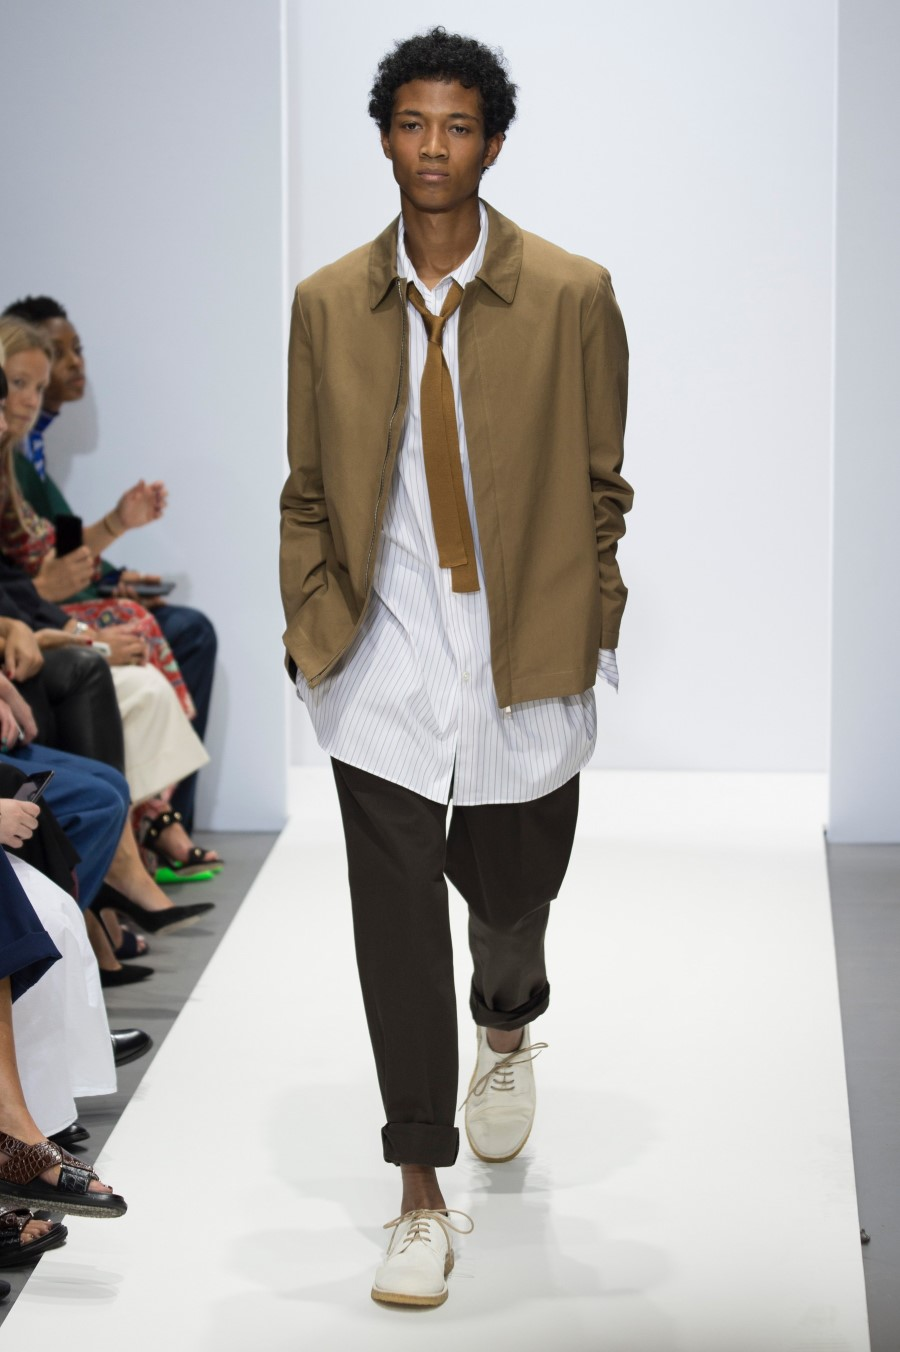 London Fashion Week Archives - Essential Homme 82686211311